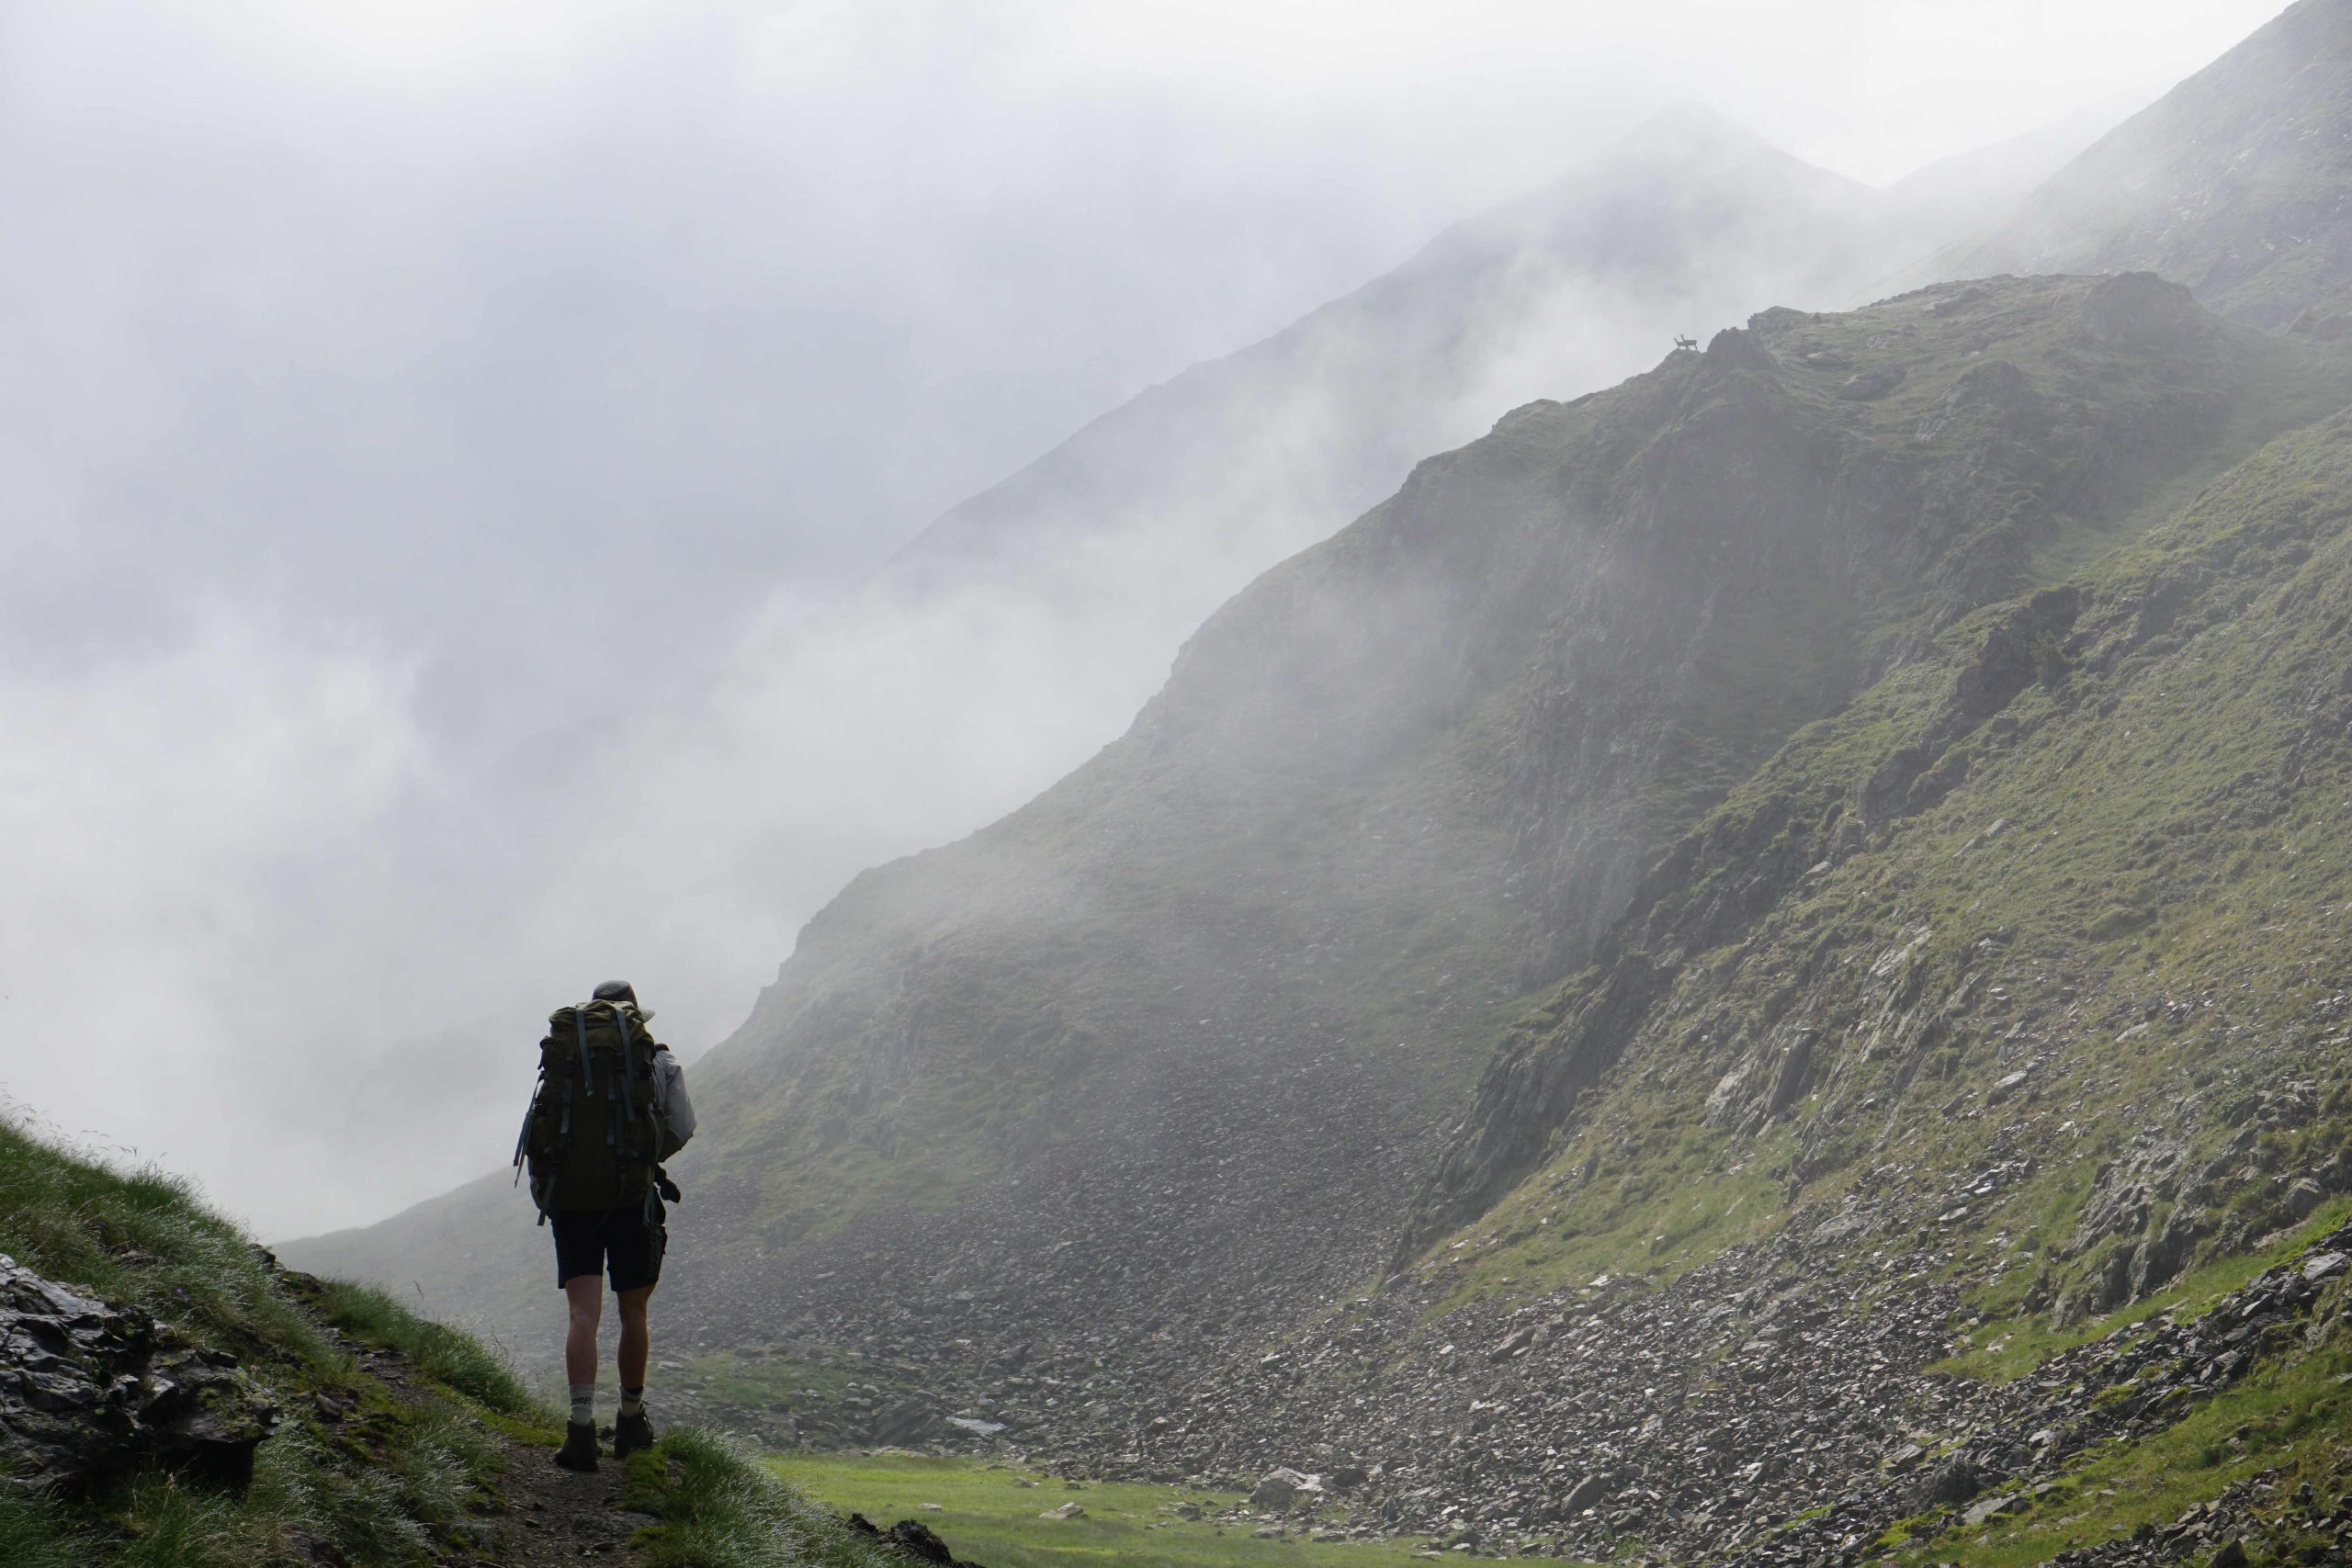 Man in hiking clothes walking into a misty mountain valley